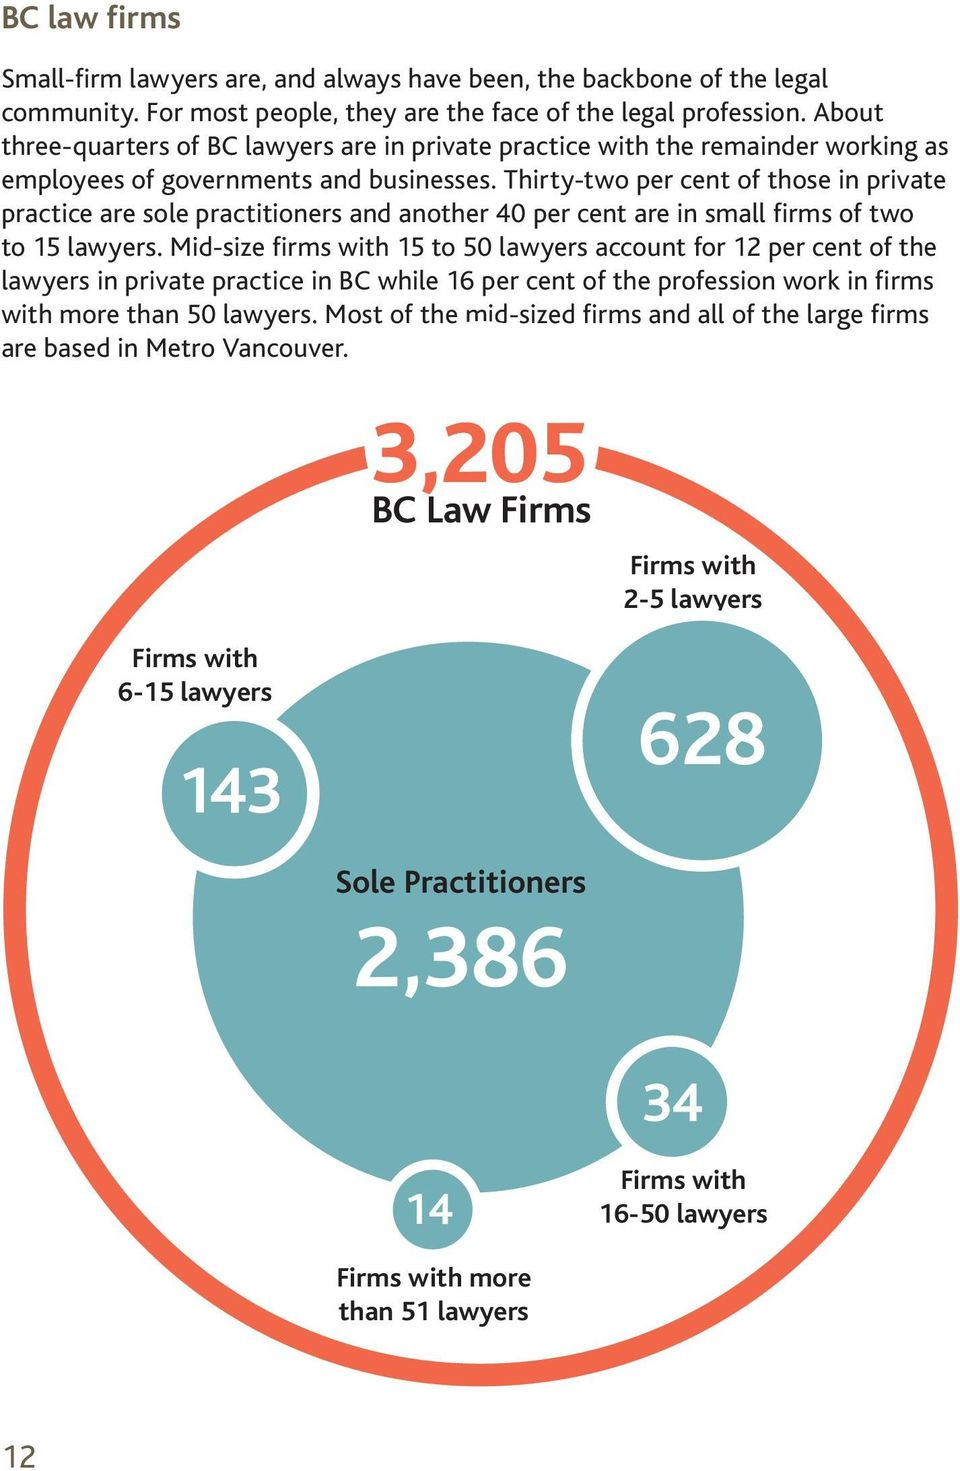 Thirty-two per cent of those in private practice are sole practitioners and another 40 per cent are in small firms of two to 15 lawyers.